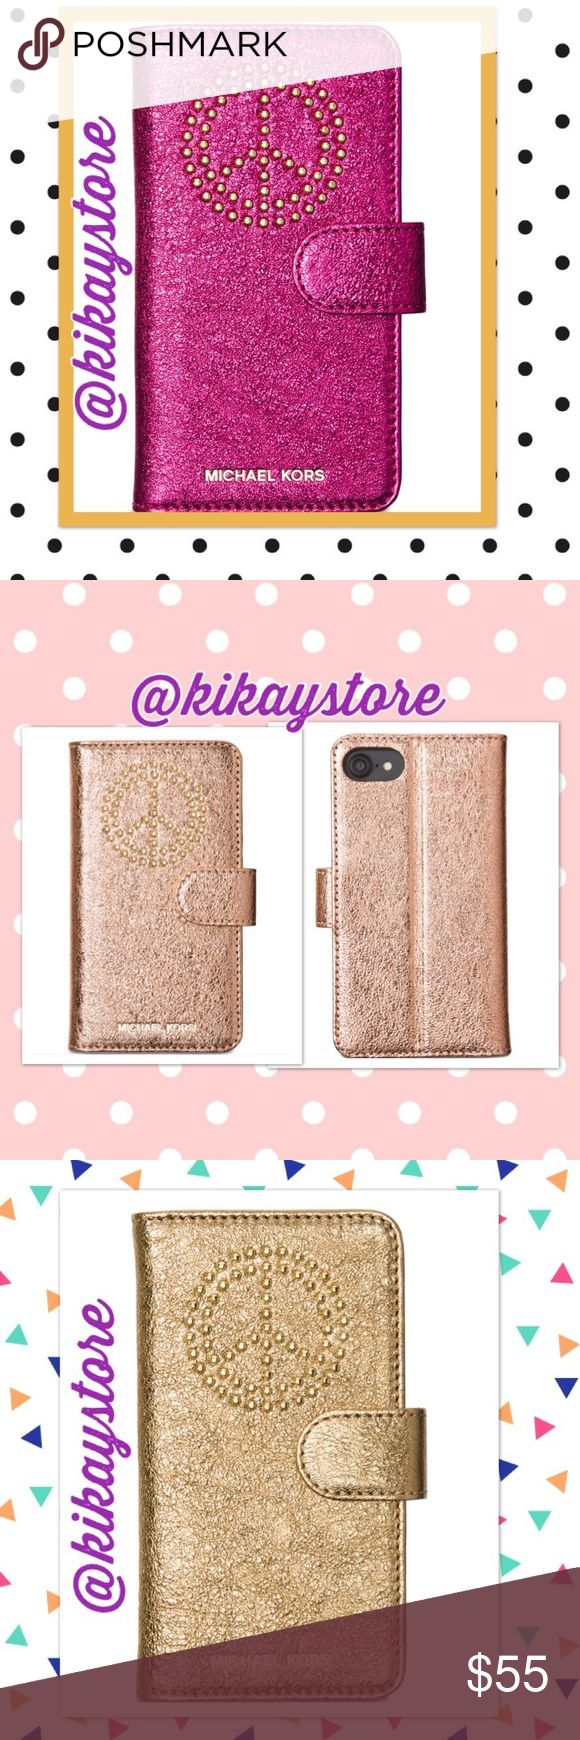 ✈️📲💵 PRE-ORDER Michael Kors Iphone 7 Case! Pre-order yours now for this very elegant MK Iphone 7 Studded Folio Case. Retail @ $80! Fast and reliable shipping. Order now and get your item within 2 weeks! Limited time Comes with various colors #soft pink #ultra pink #gold #light pewter Michael Kors Accessories Phone Cases